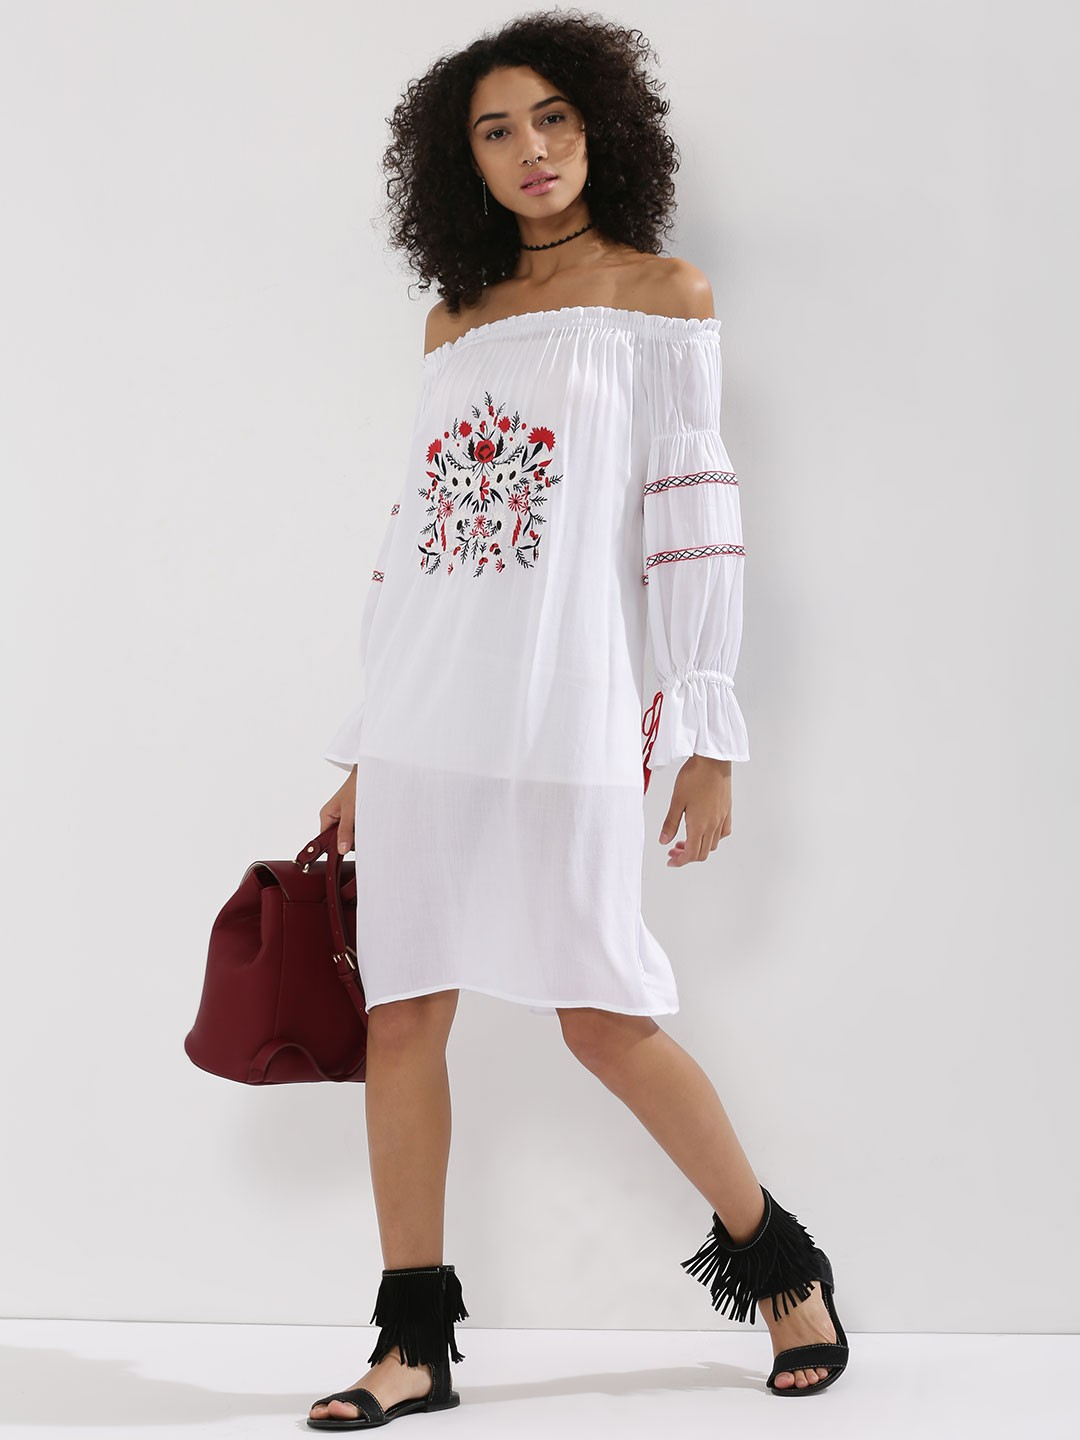 Buy Rena Love Floral Print Peplum Top For Women: Buy RENA LOVE Cuffed Sleeve Midi Dress With Embroidery For